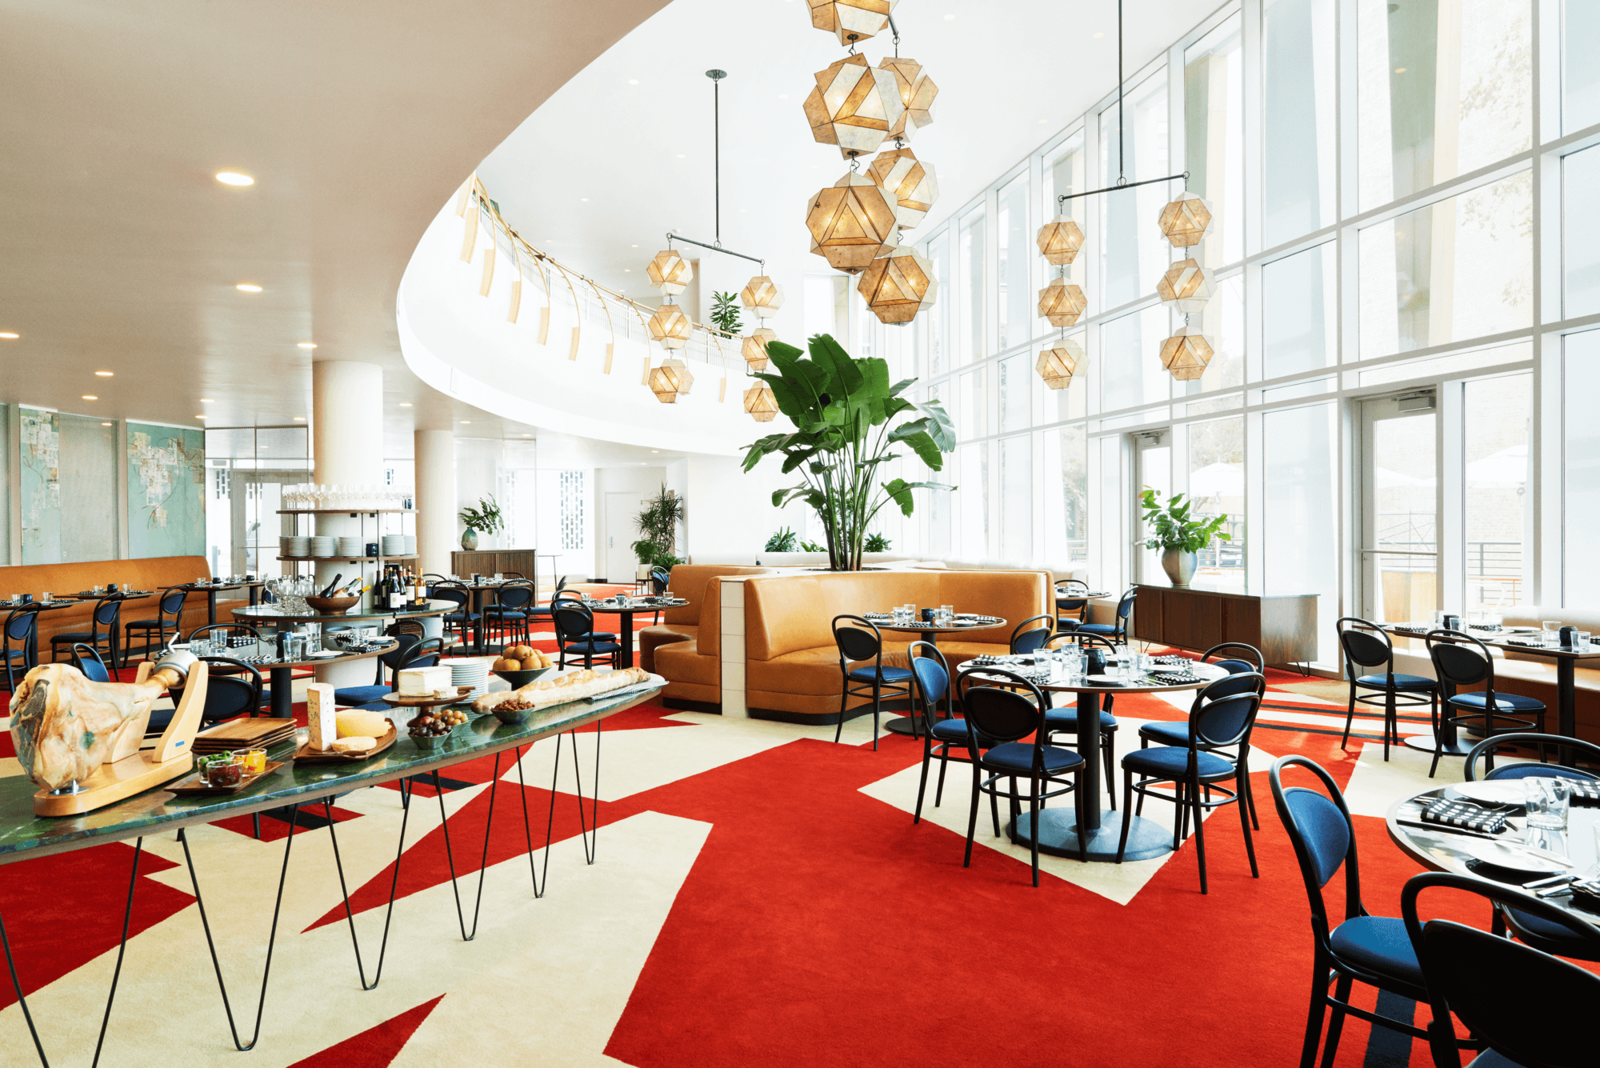 The 53 rooms of The Durham Hotel – a mid-century modern boutique, hotel in the heart of downtown Durham are decked out in the bold Bauhaus colors of yellow, red and blue.  Photo 8 of 12 in Follow Us to 10 Midcentury Modern-Inspired Hotels Around the Globe